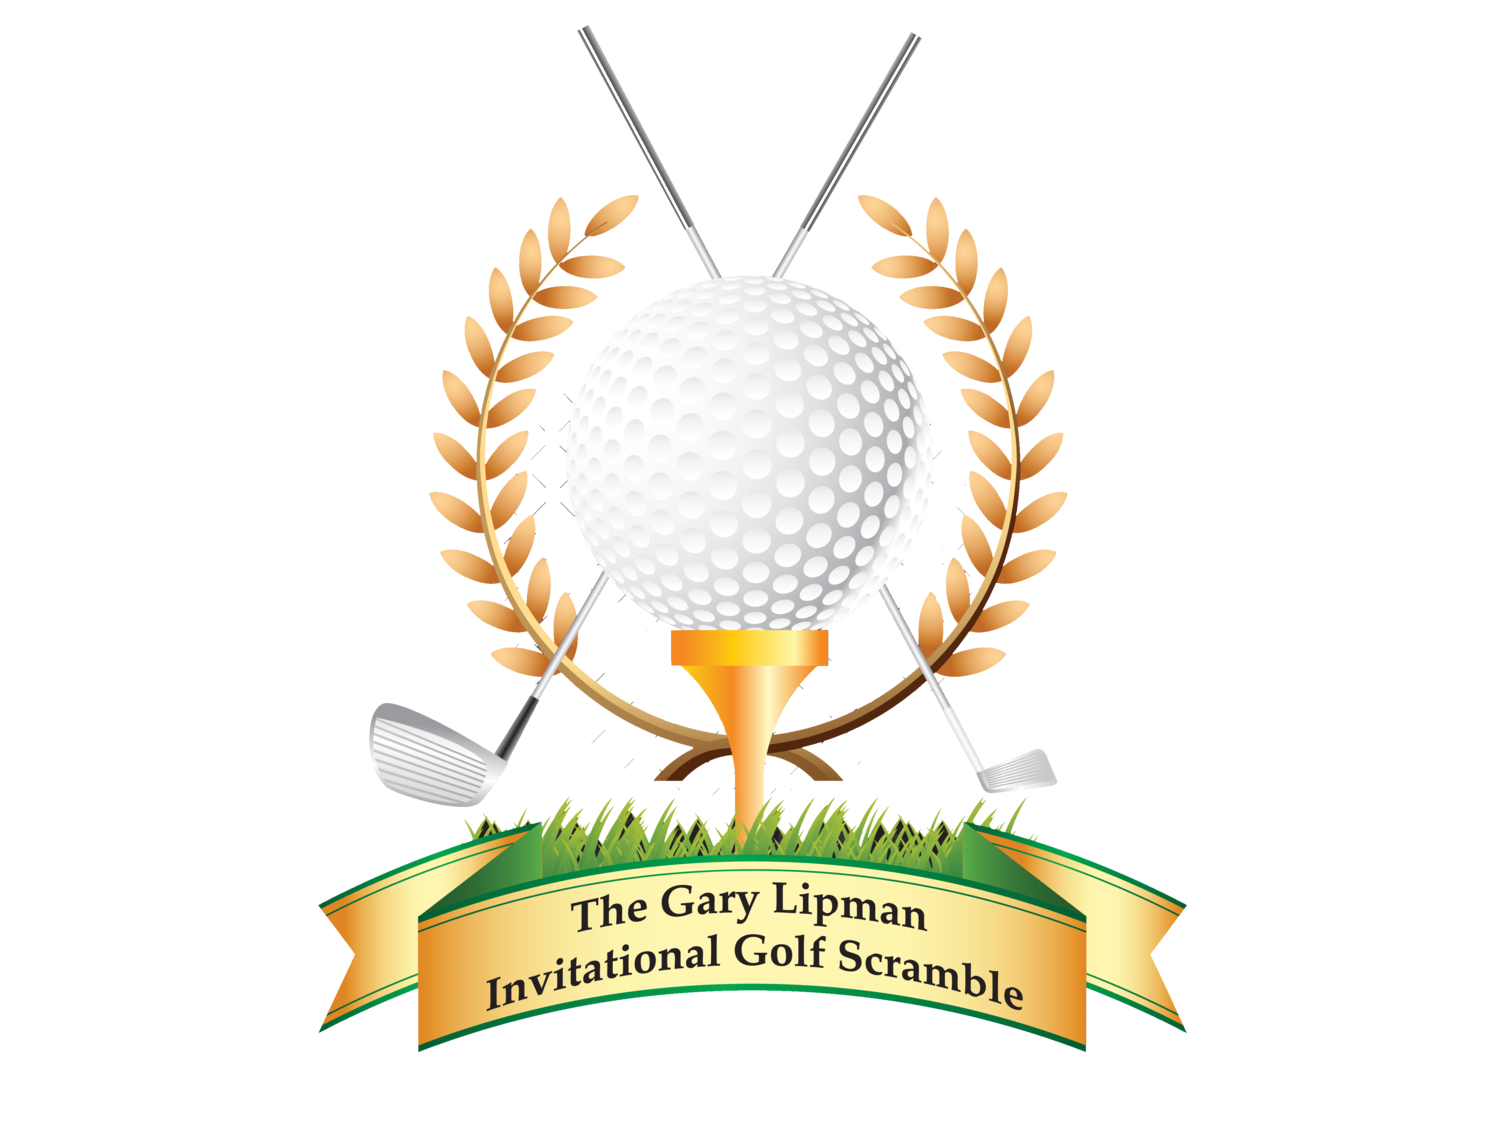 Gary Lipman Invitational